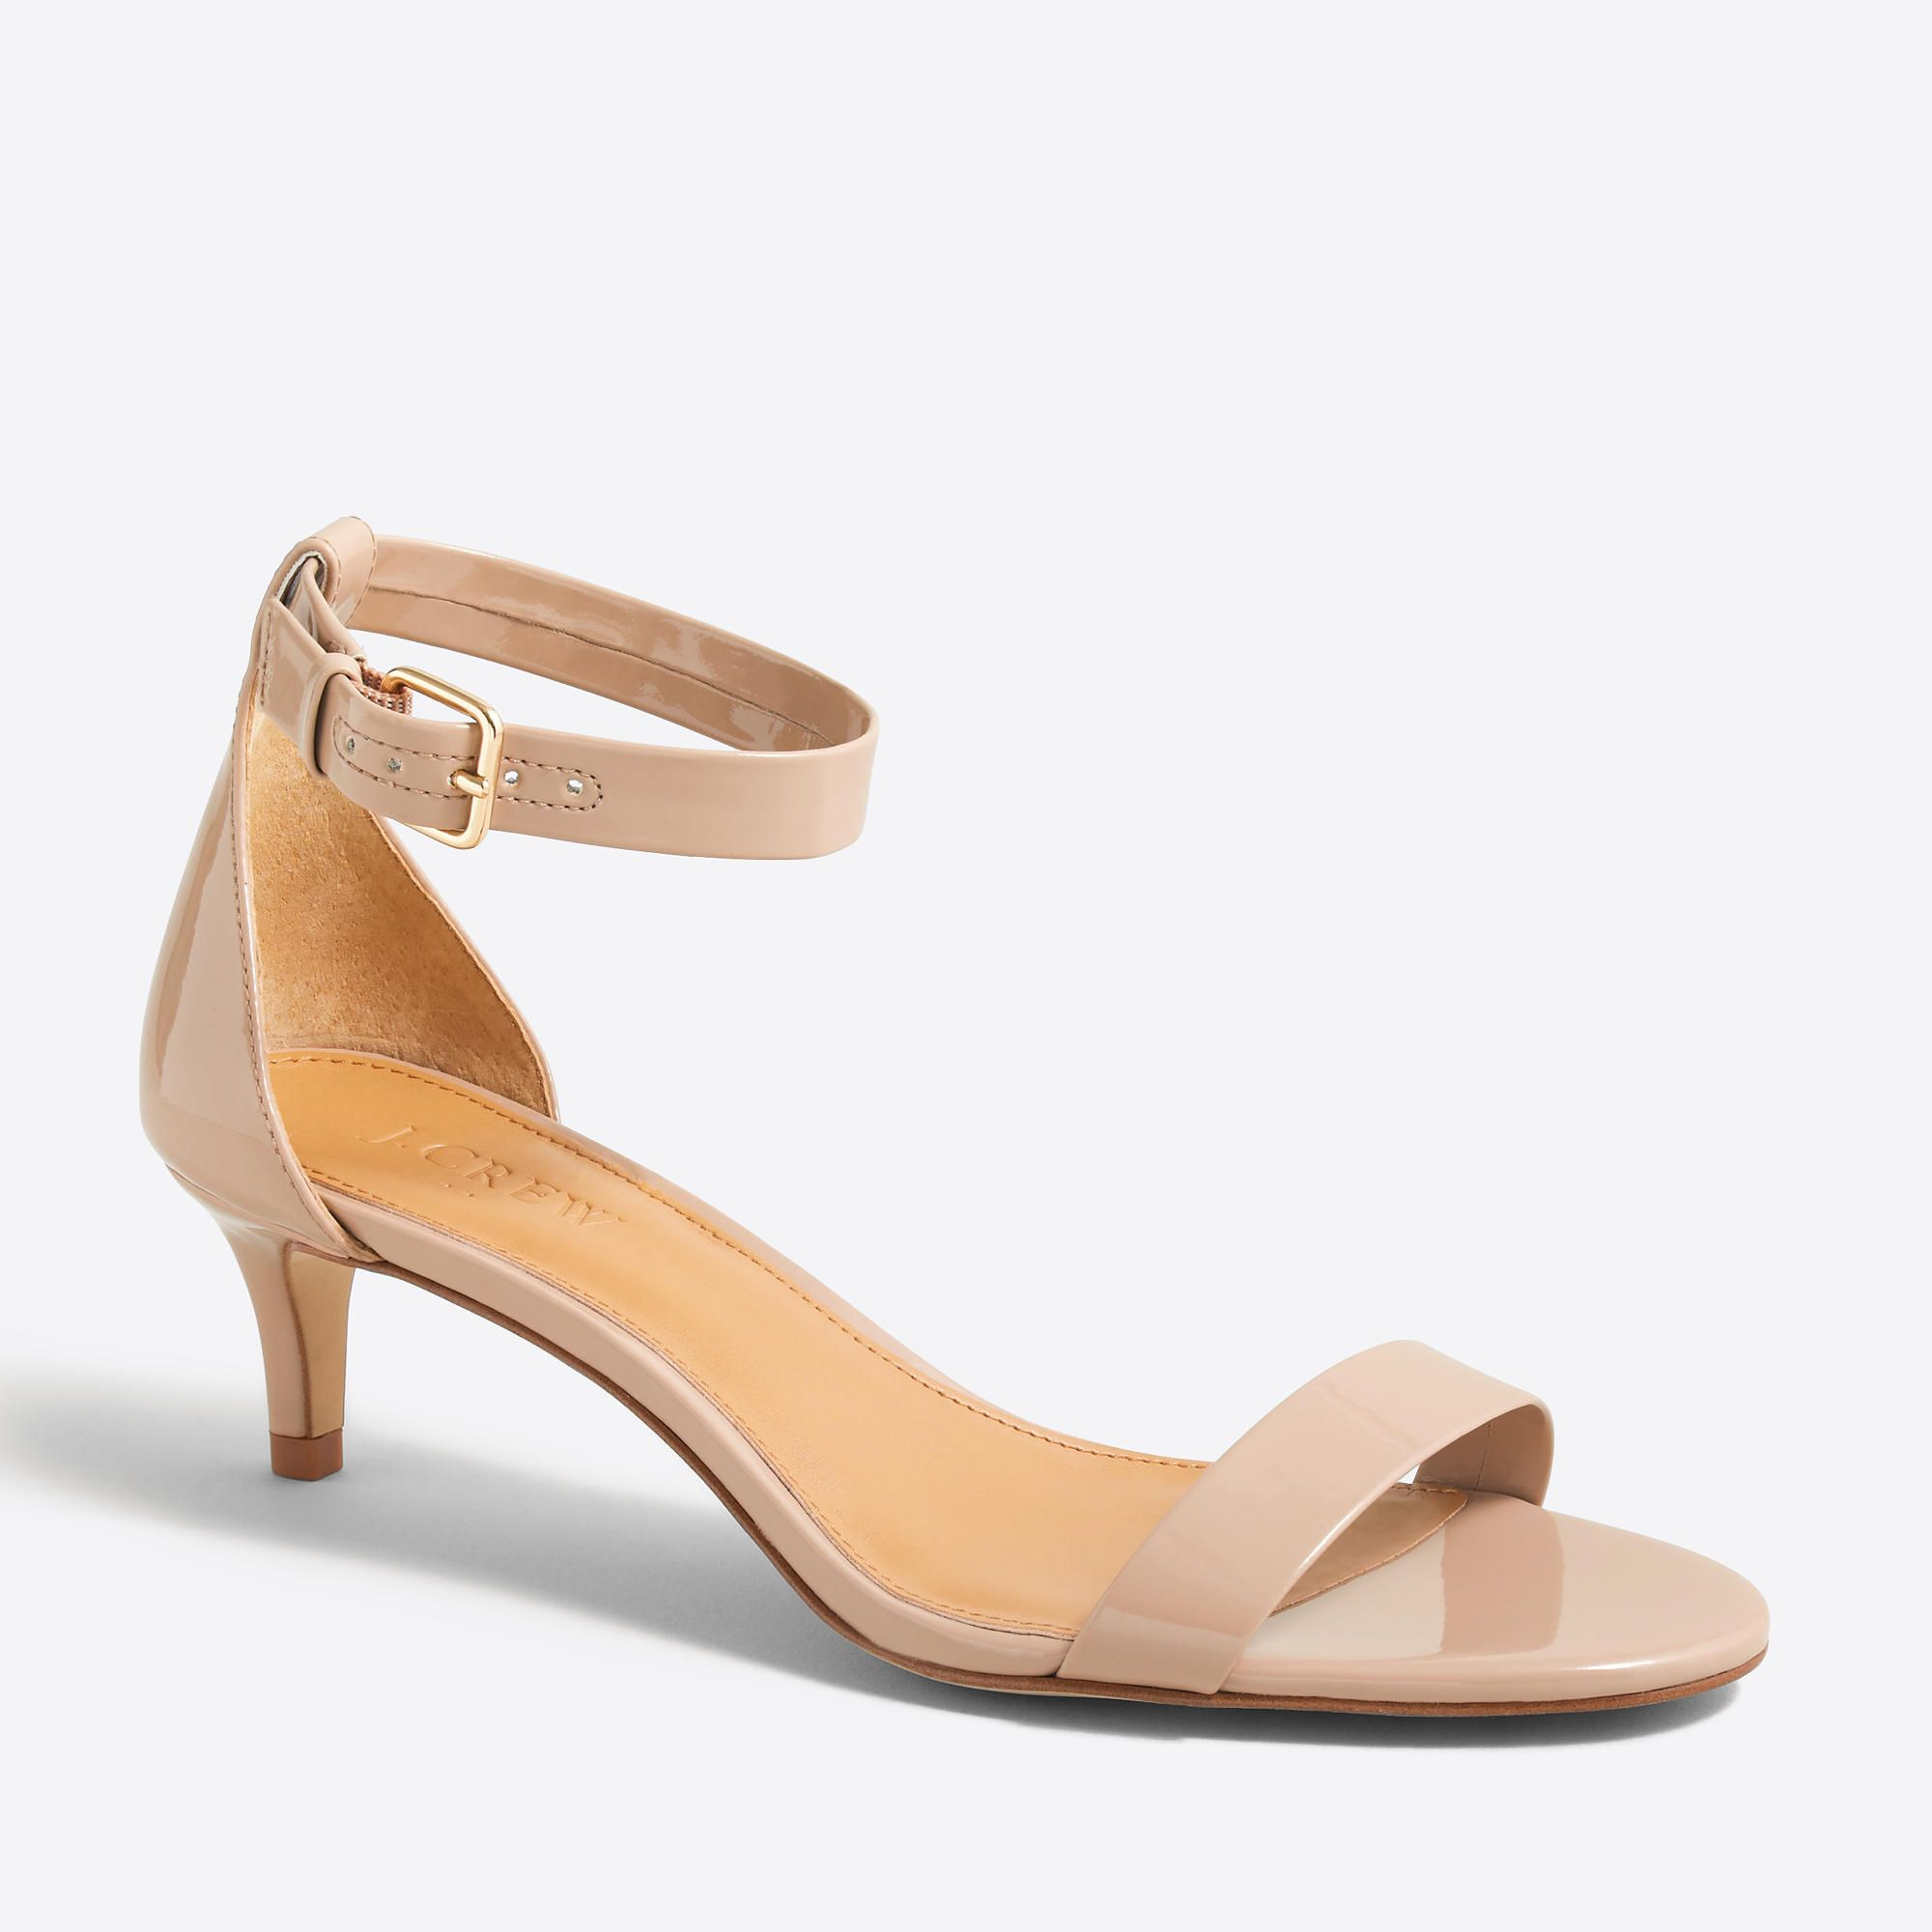 Patent Polyurethane Upper Natural Rodeo Pu Lining Man Made Sole 2 1 X2f 4 Heel Online Exclusive Import Kitten Heel Shoes Kitten Heel Sandals Kitten Heels